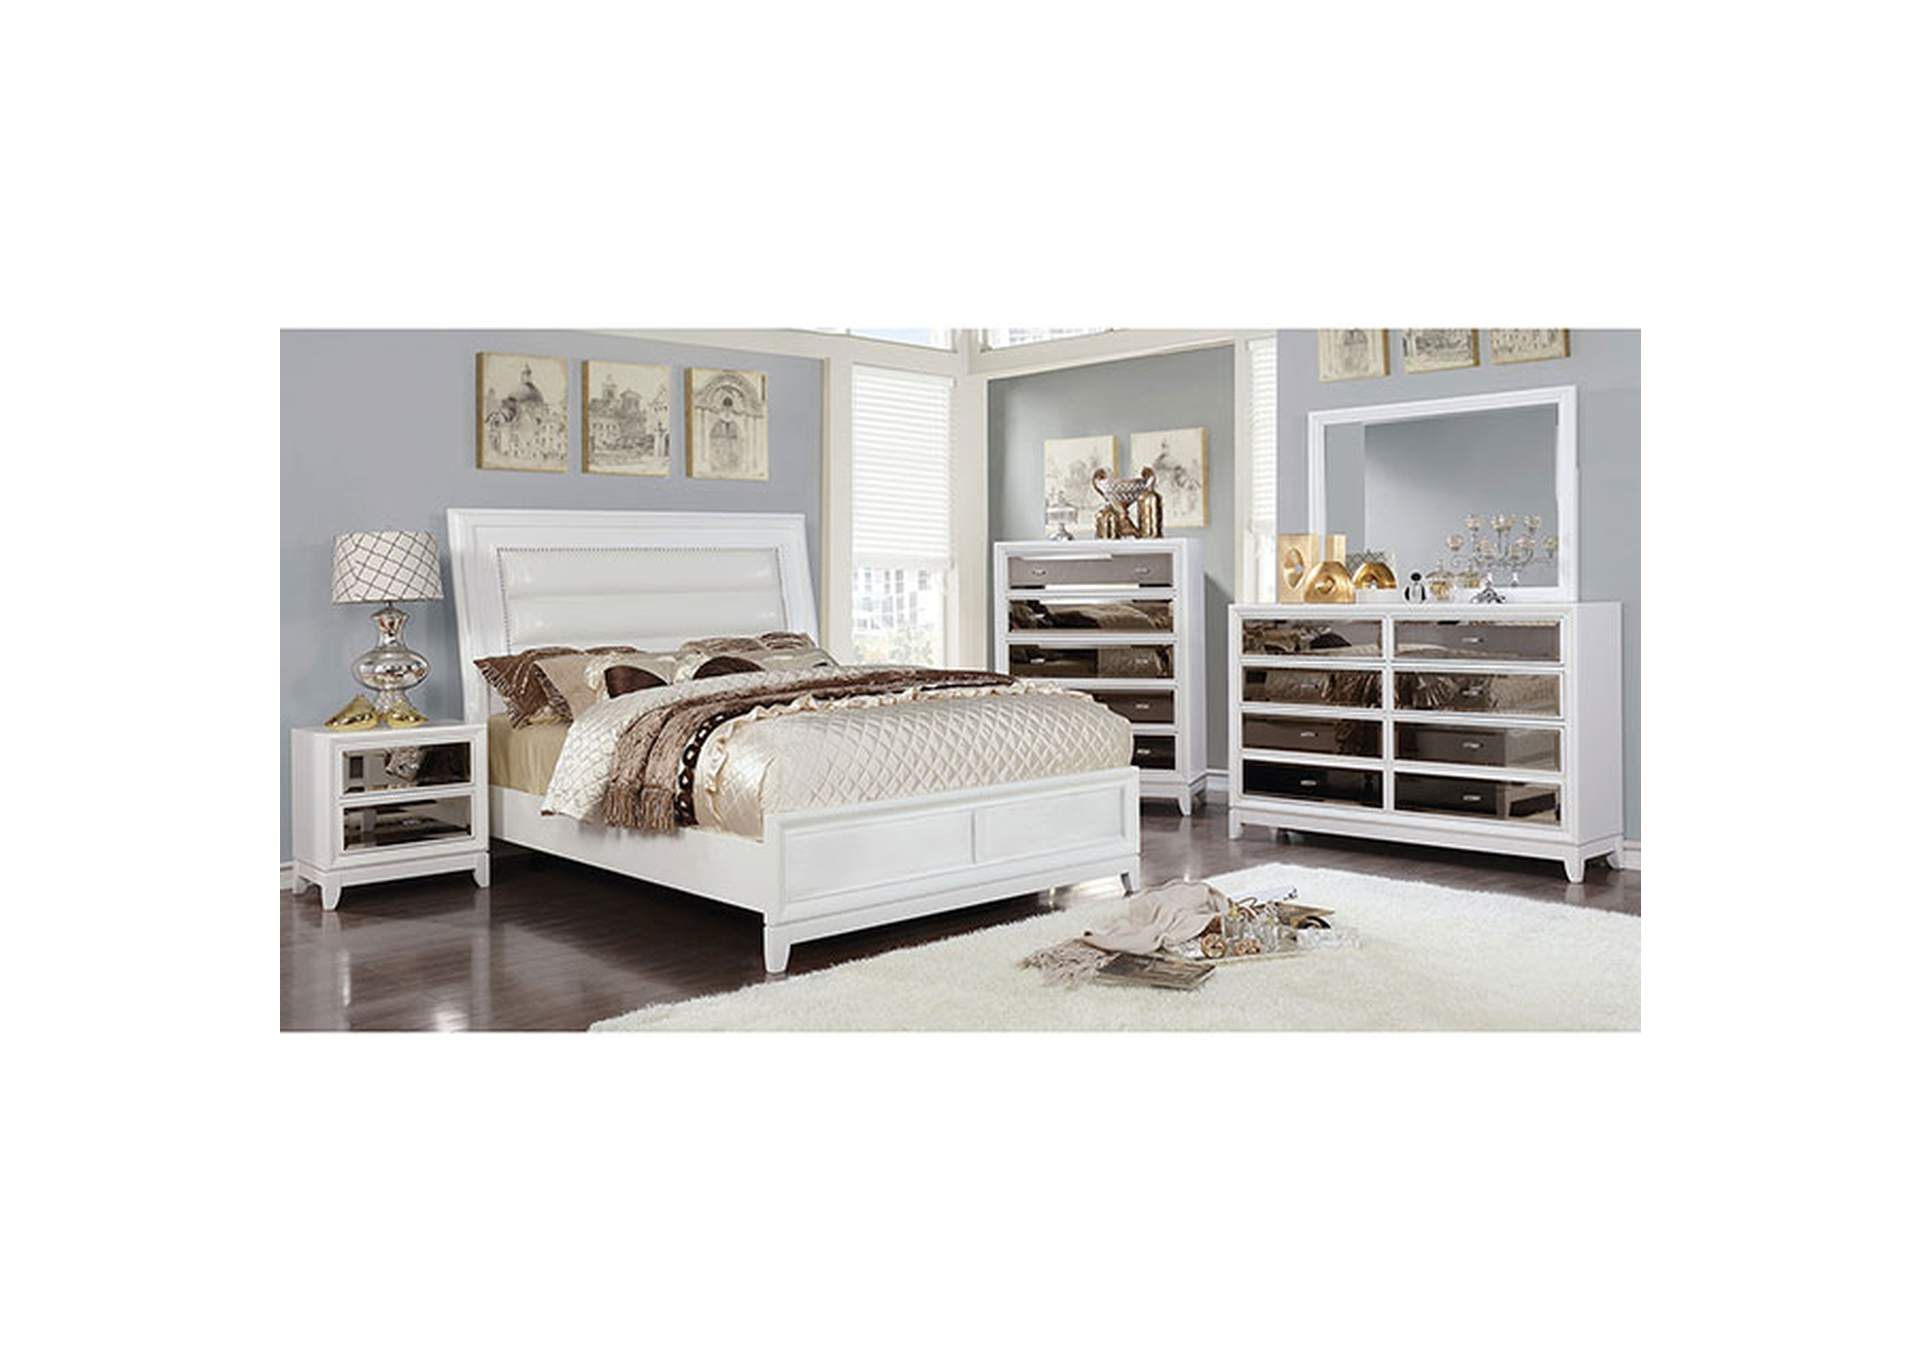 Golva White Upholstered Eastern King Panel Bed,Furniture of America